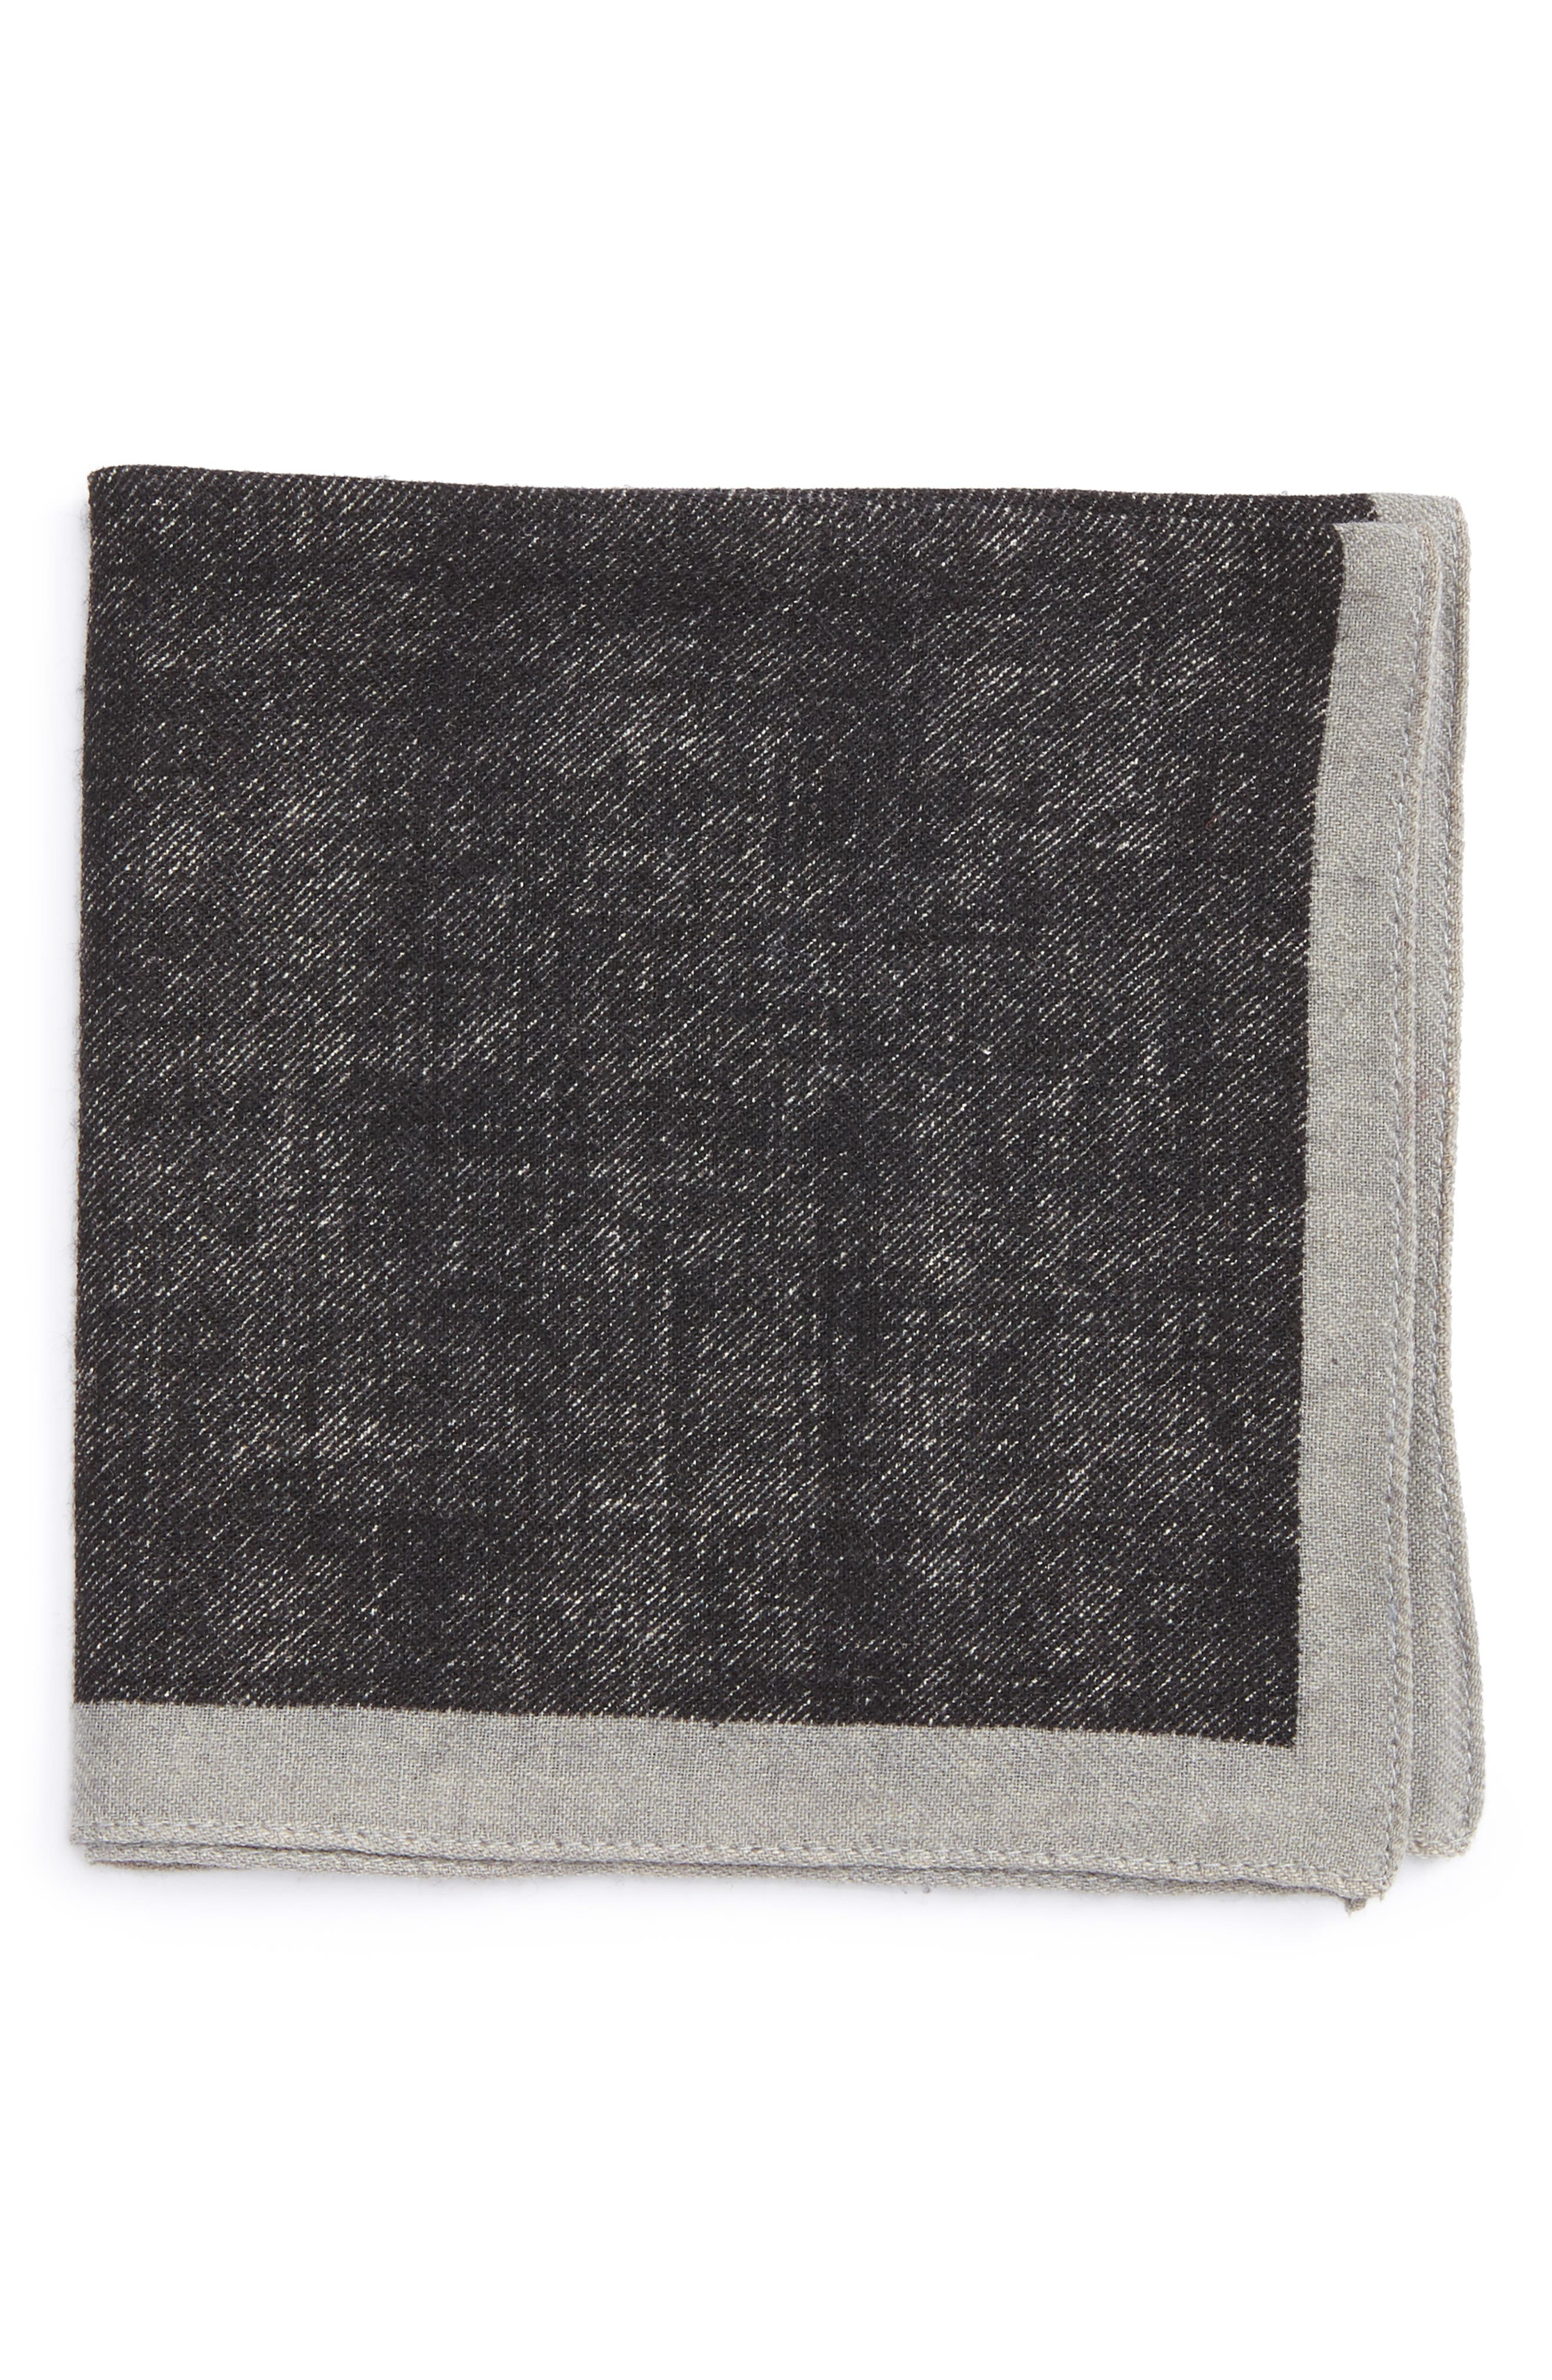 Solid Wool Pocket Square,                         Main,                         color, 061